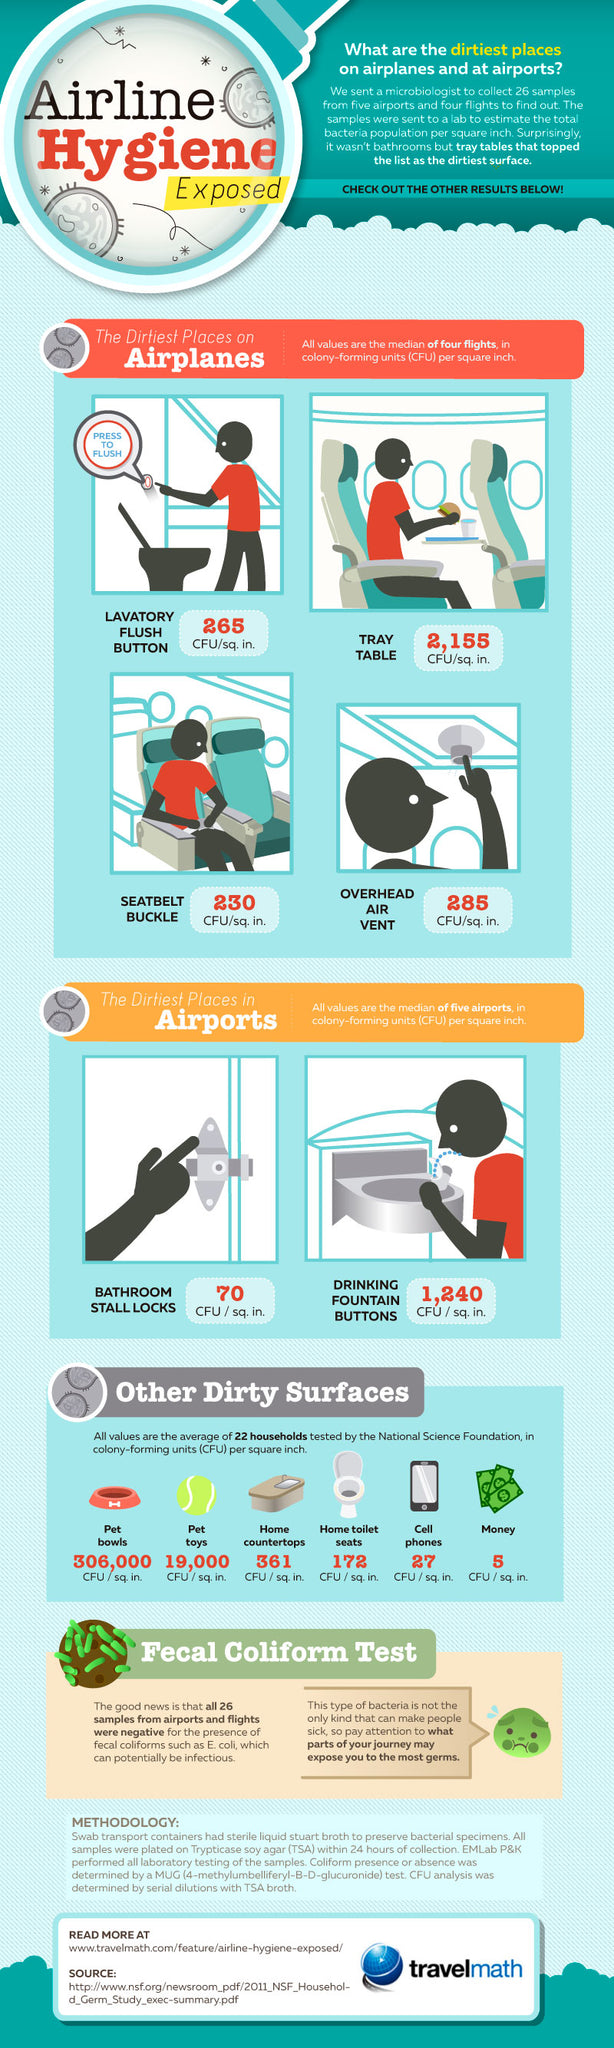 Airline Hygiene Exposed - Travelmath - ThinkerNation